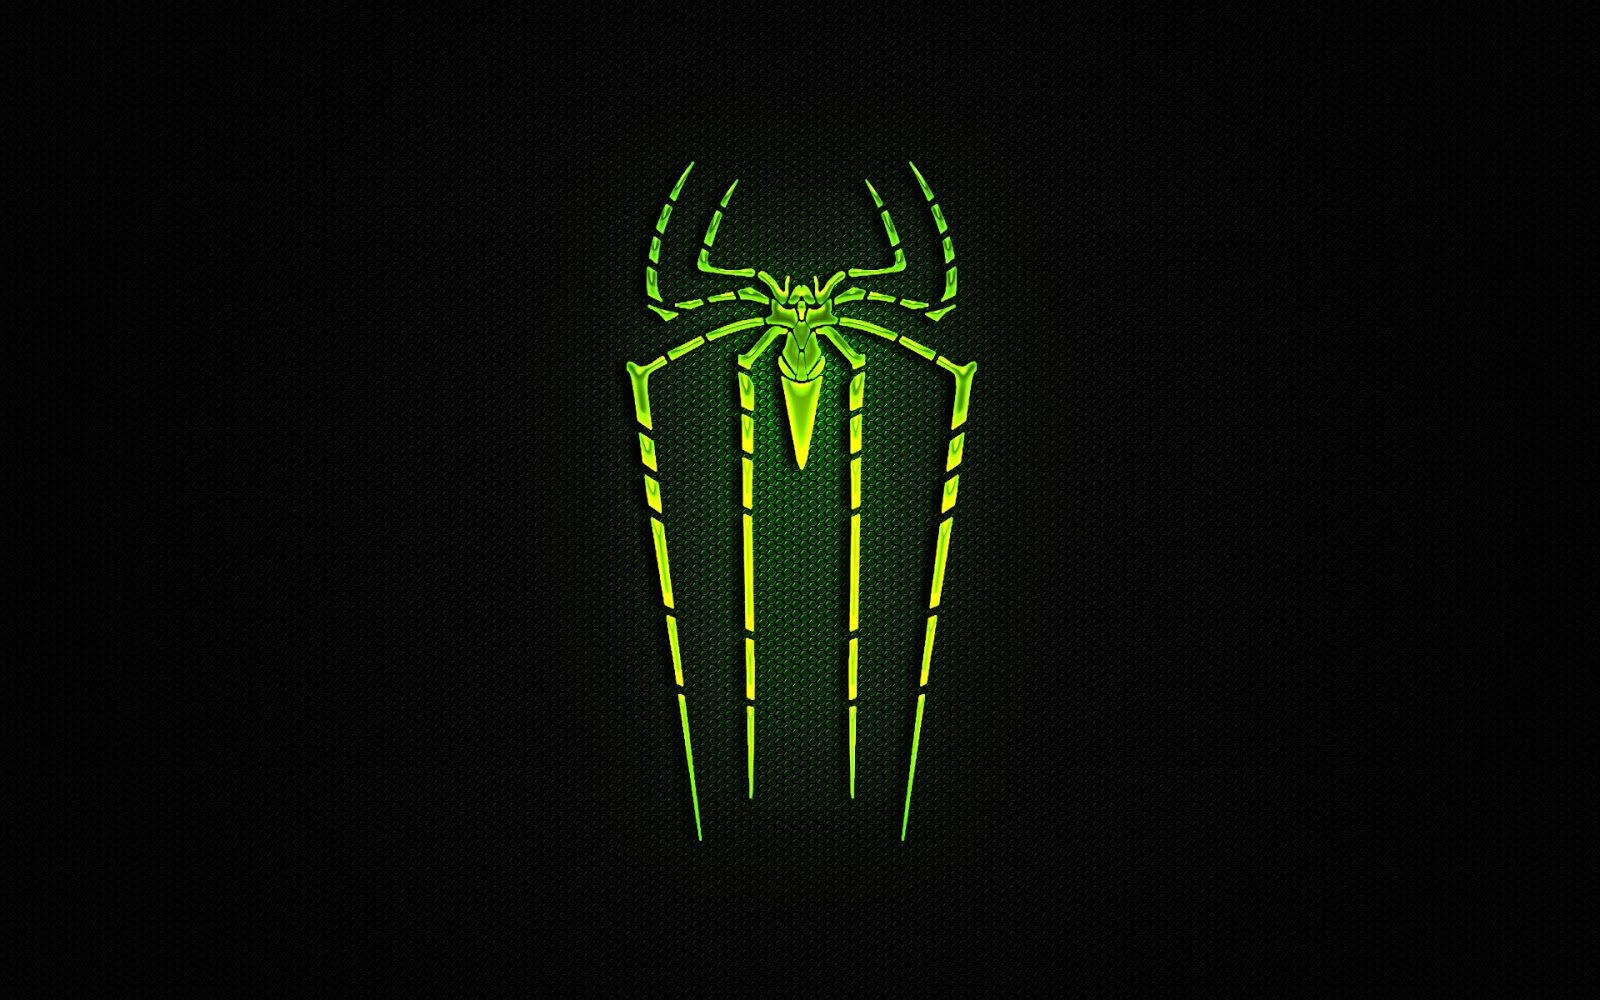 Green Logo Spiderman Images HD